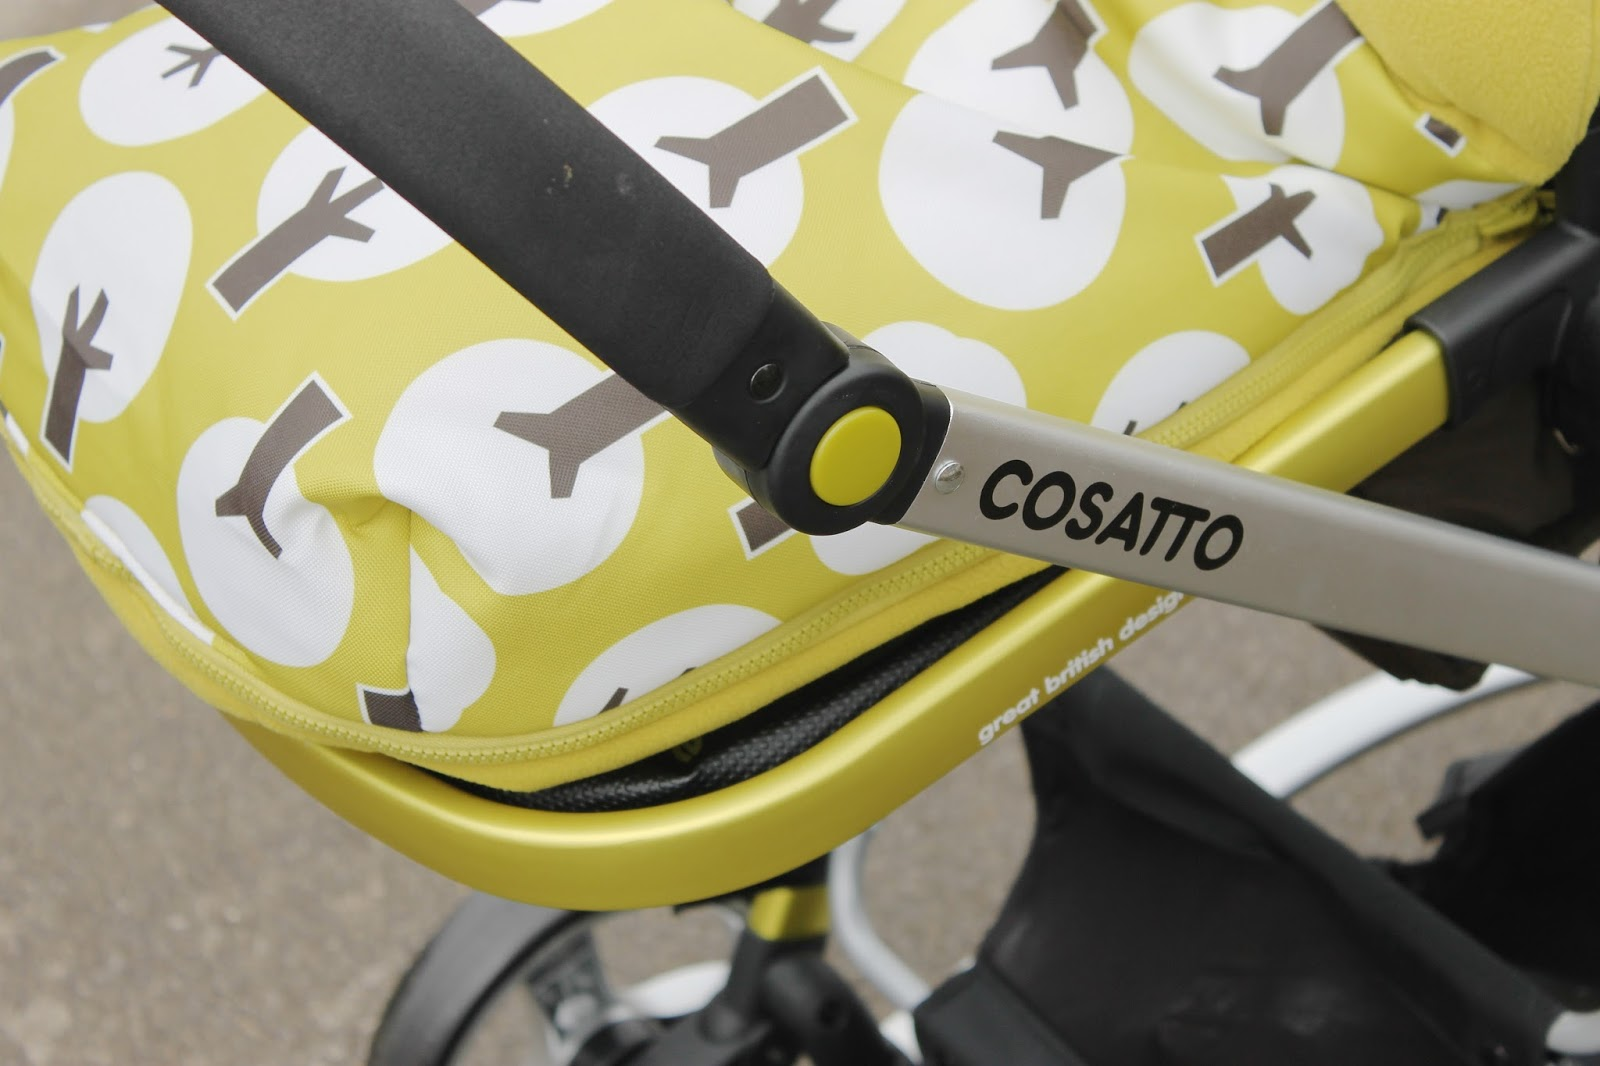 Cosatto Giggle Review, Cosatto Treet, Cosatto Pram, Travel System Reviews